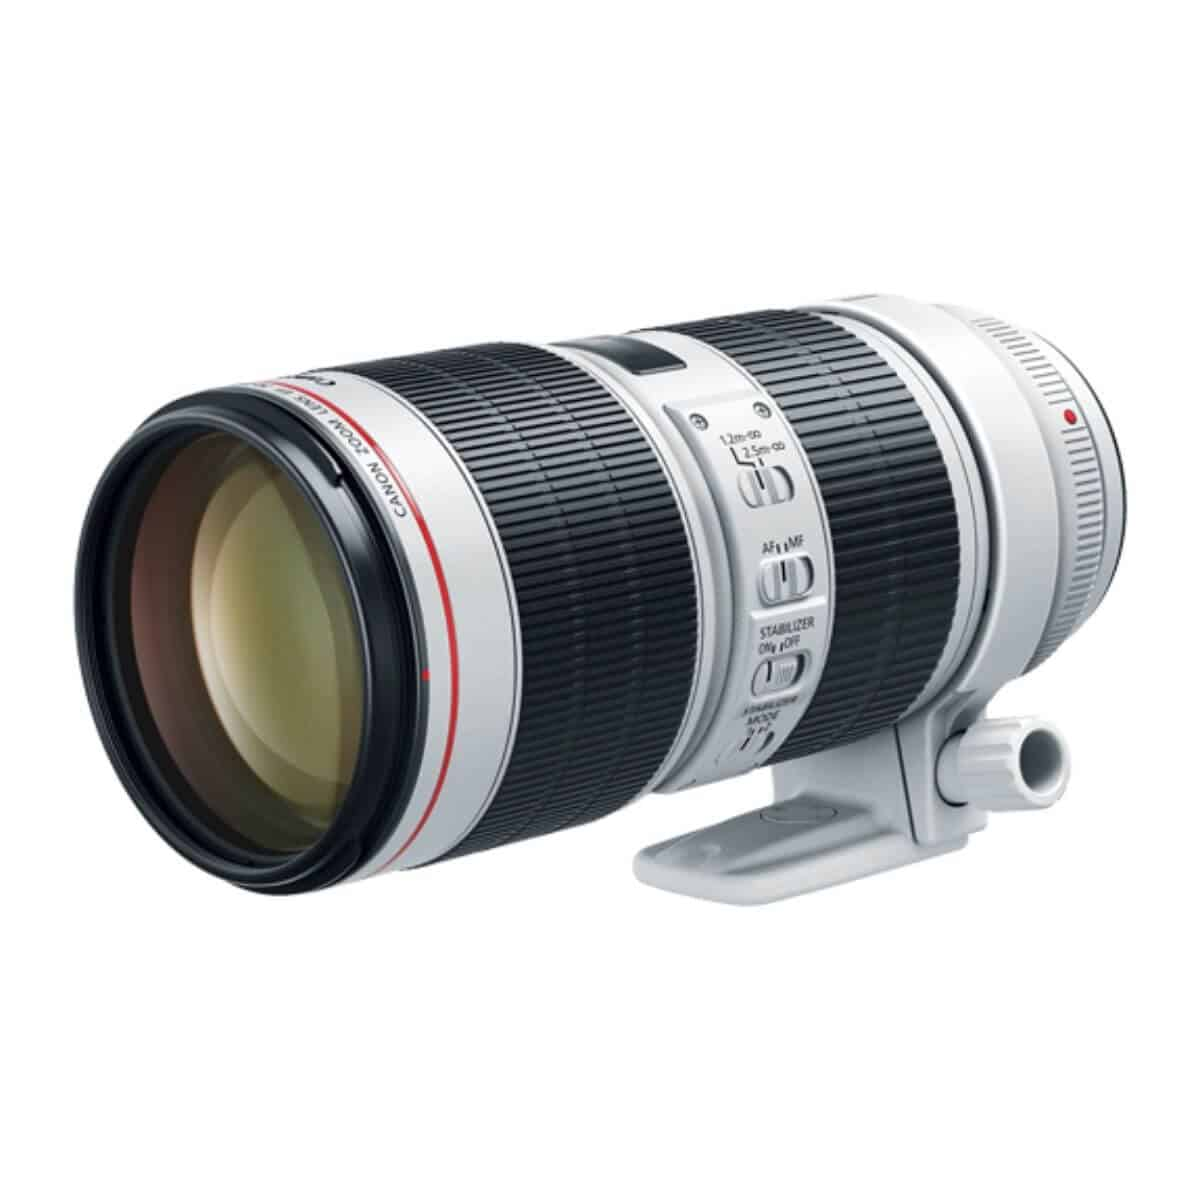 Canon 70-200mm f/2.8 lens.